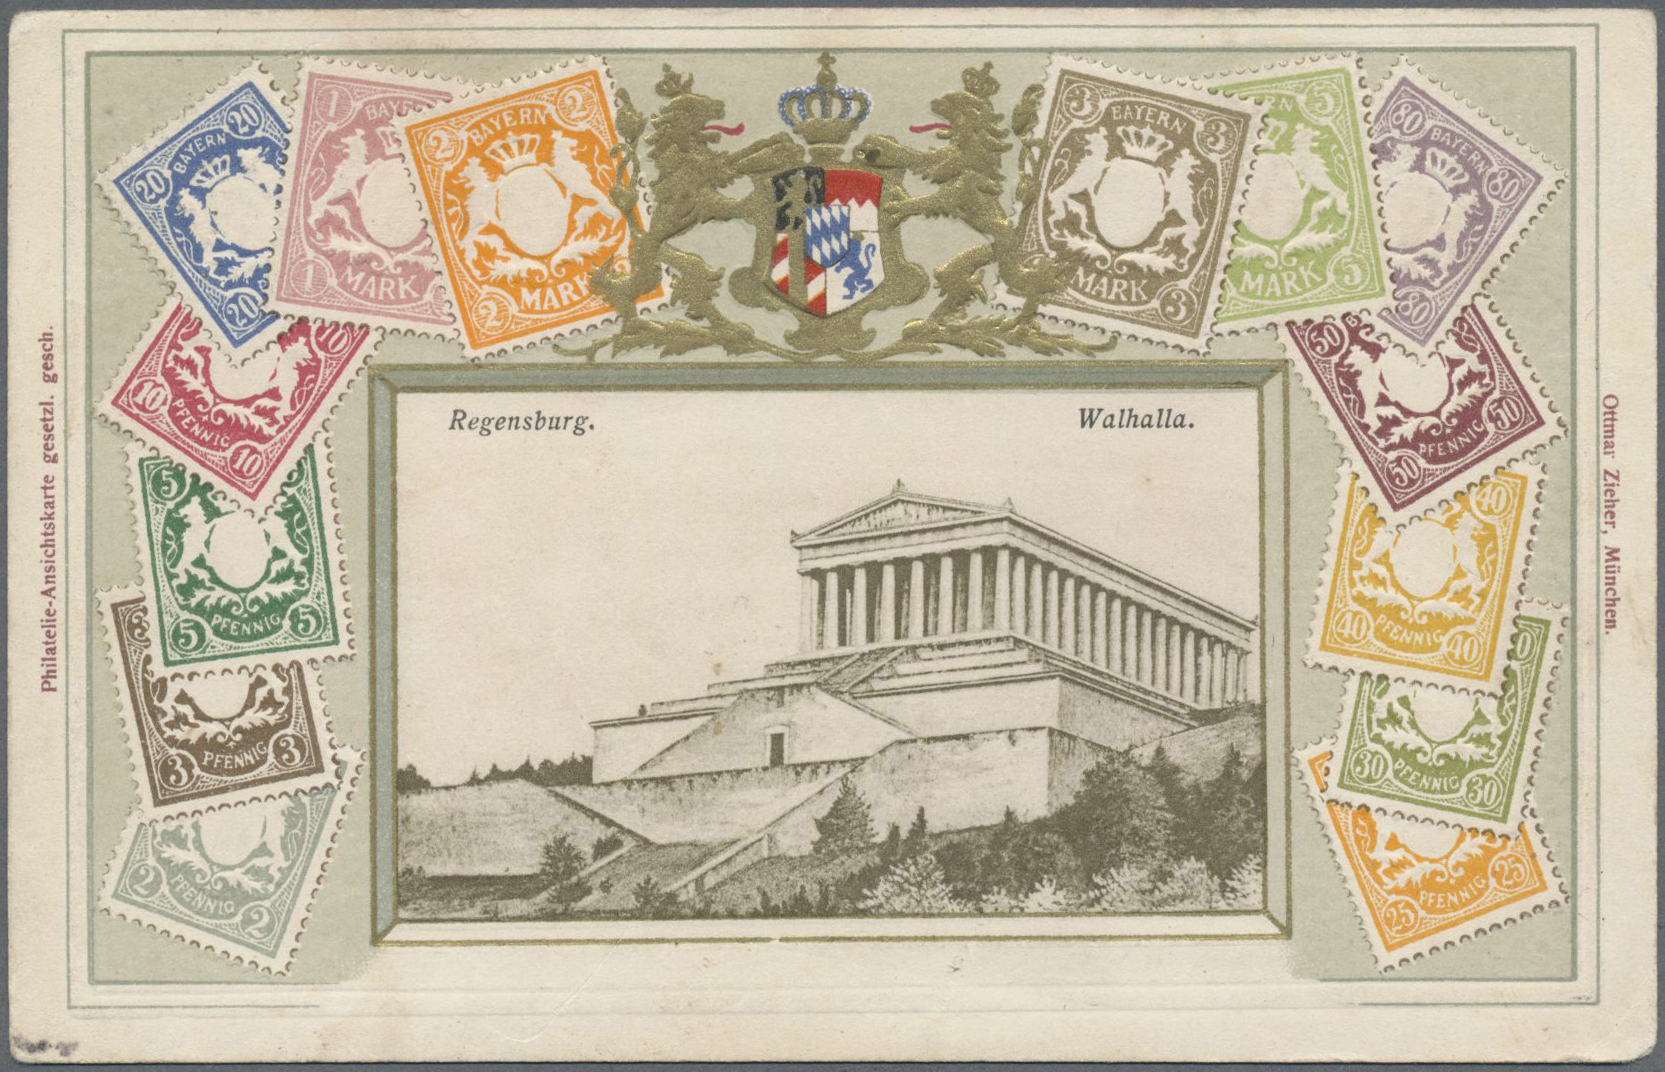 Lot 36027 - deutschland  -  Auktionshaus Christoph Gärtner GmbH & Co. KG Sale #44 Collections Germany